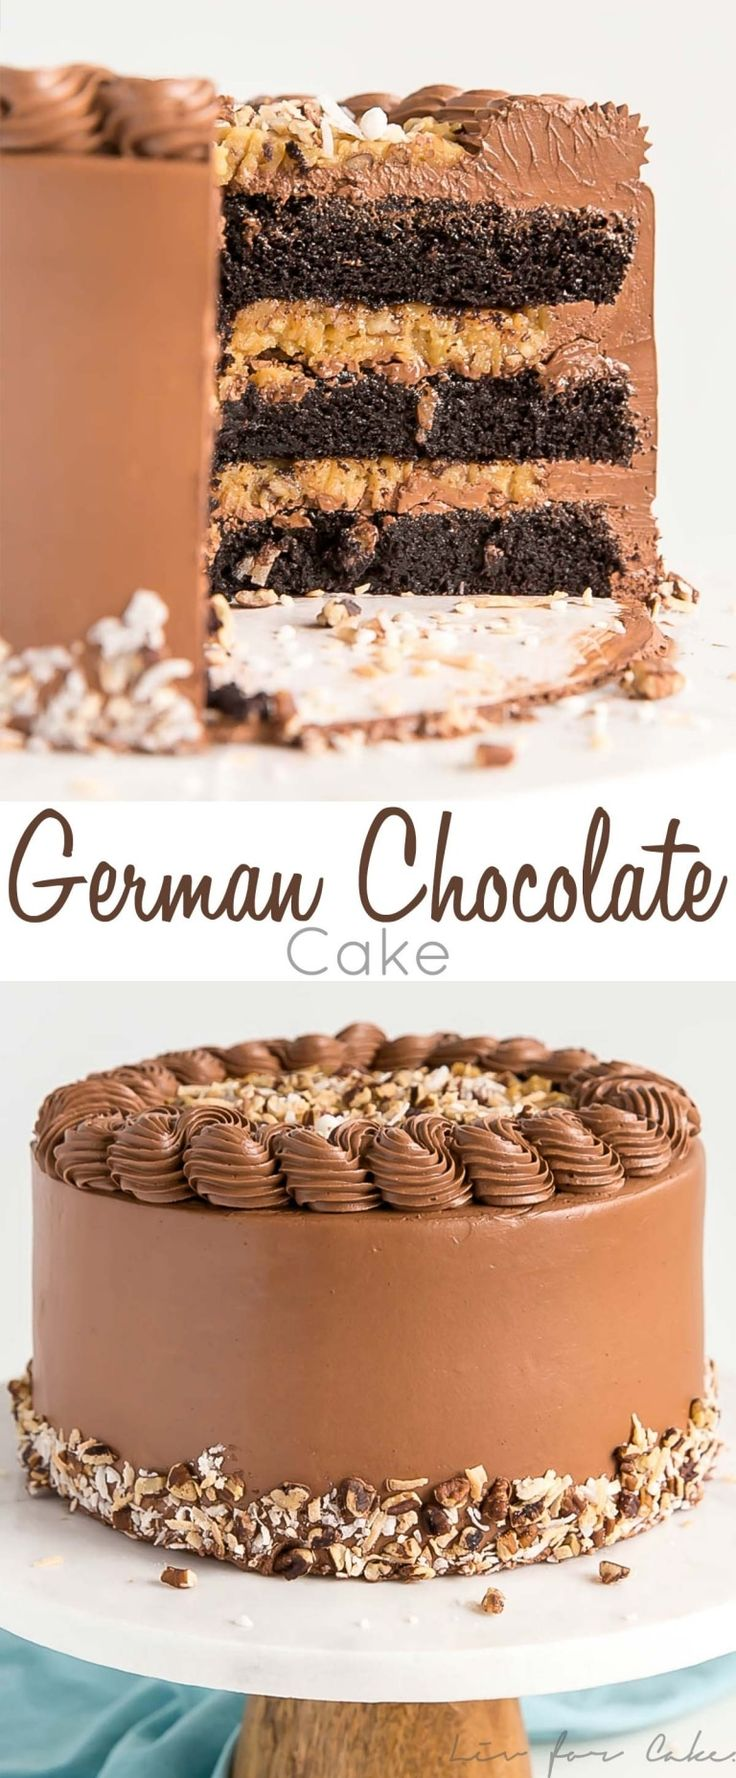 This classic German Chocolate Cake combines rich chocolate cake layers with a sw…